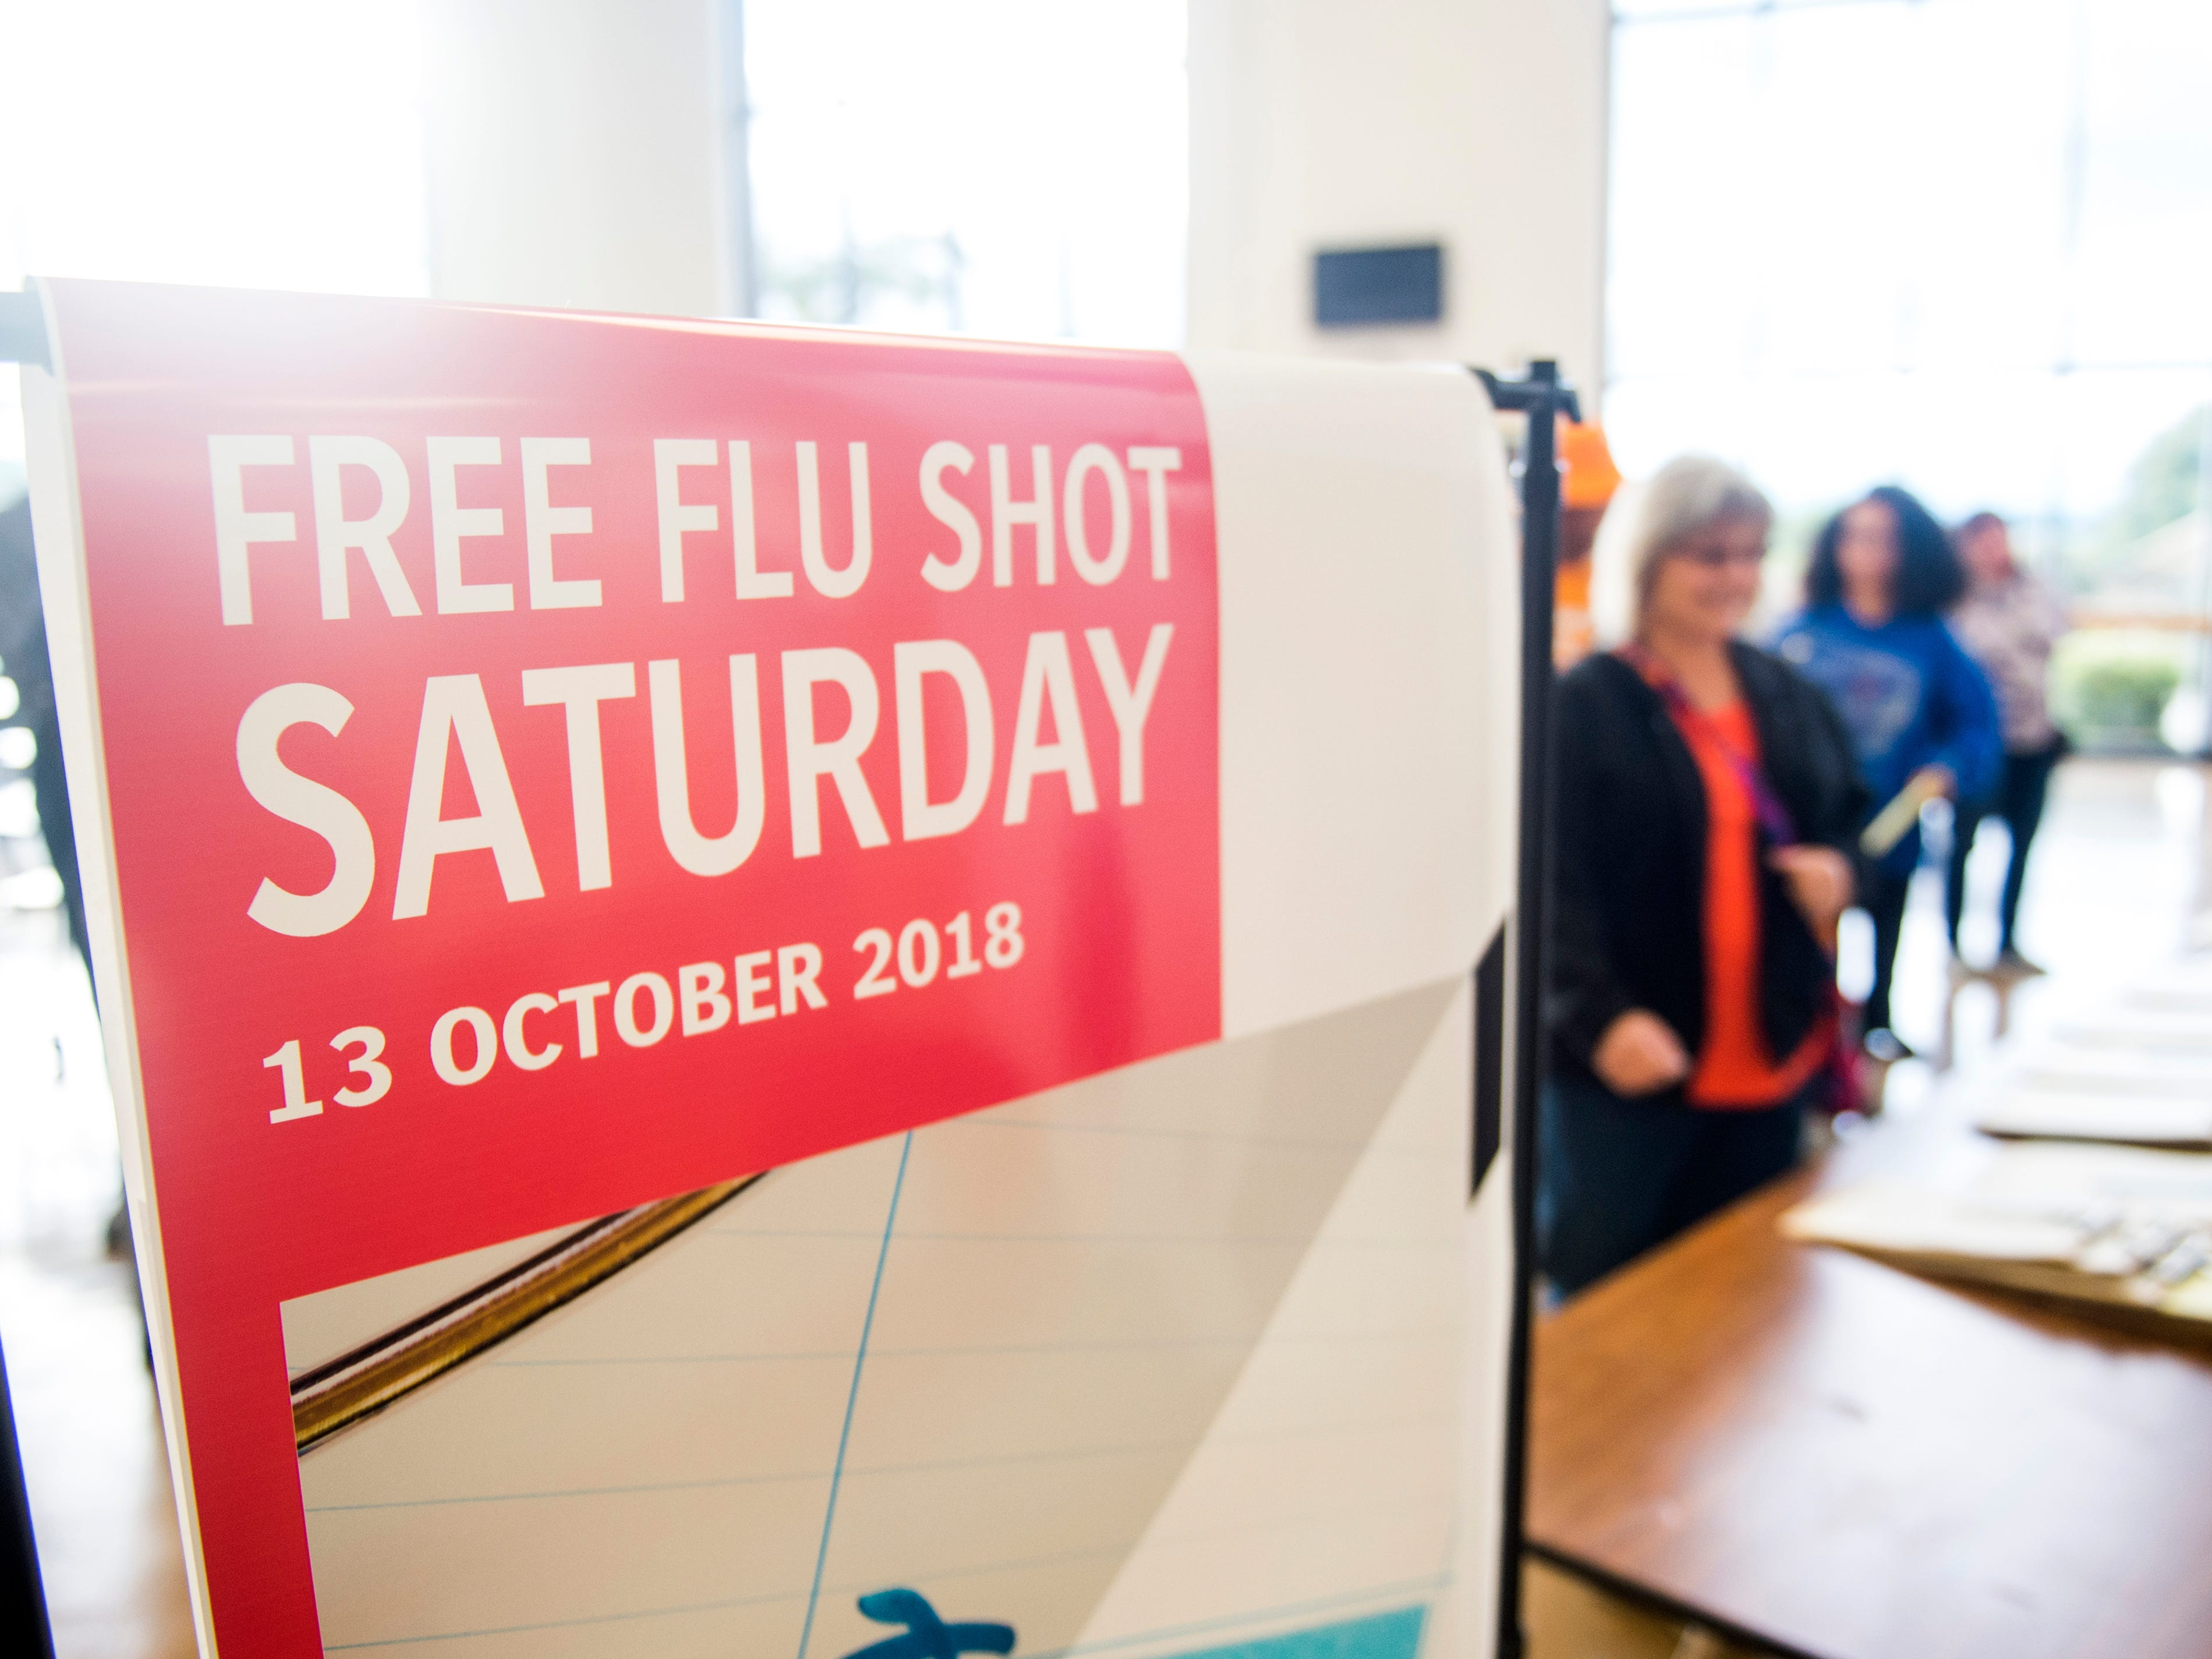 People stream into Farragut High School for a free flu shot during Free Flu Shot Saturday on Saturday, October 12, 2018.